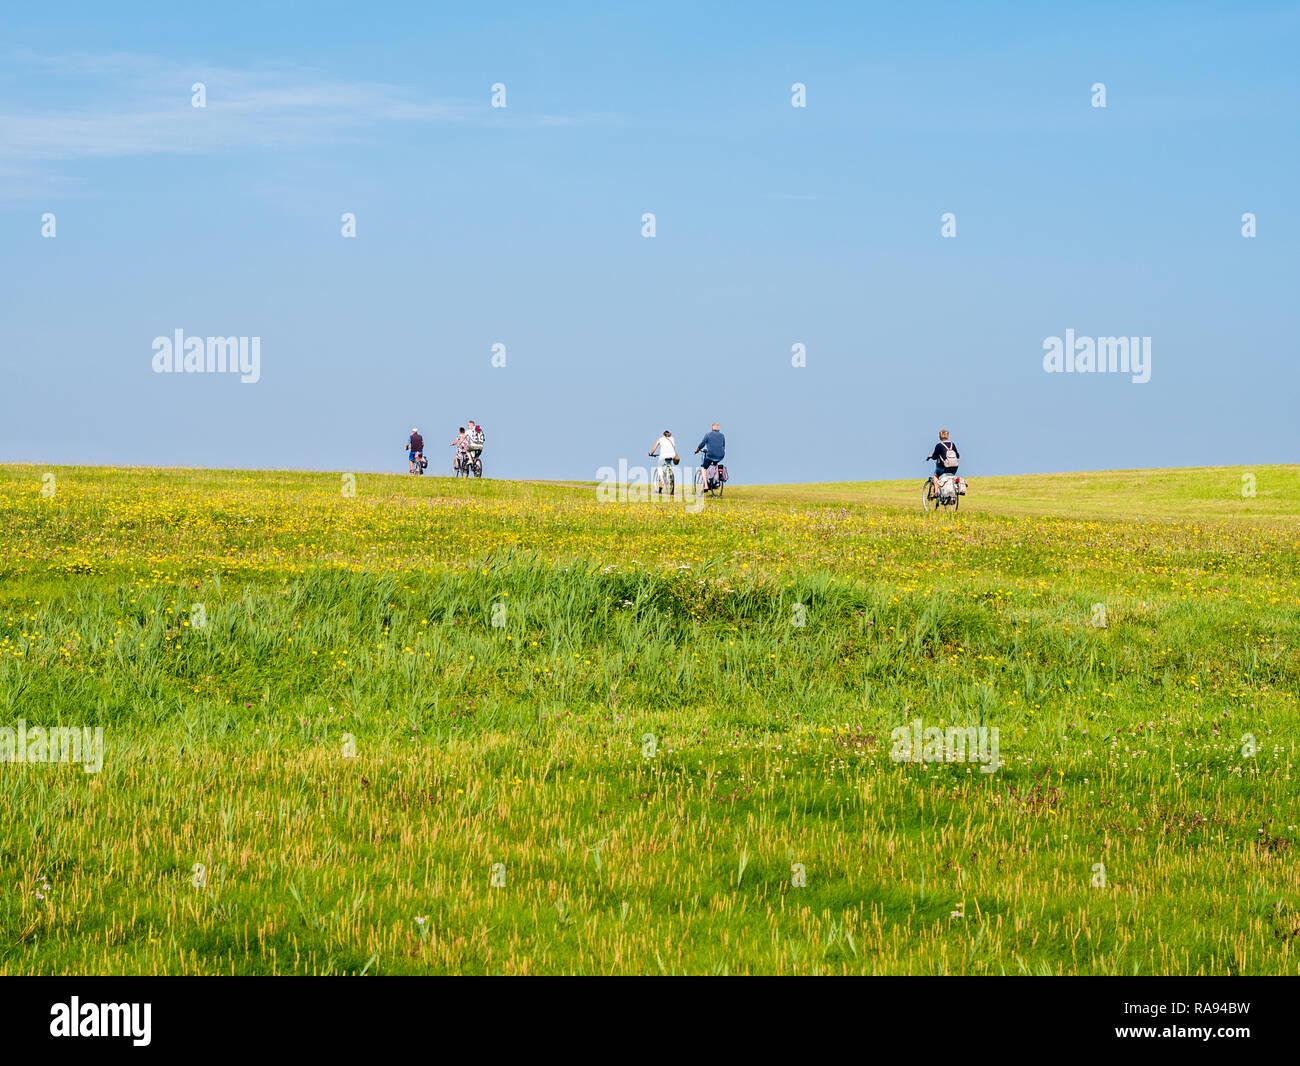 Group of bicyclists cycling on dike with grass field on a sunny day with blue sky, Schiermonnikoog, Netherlands - Stock Image